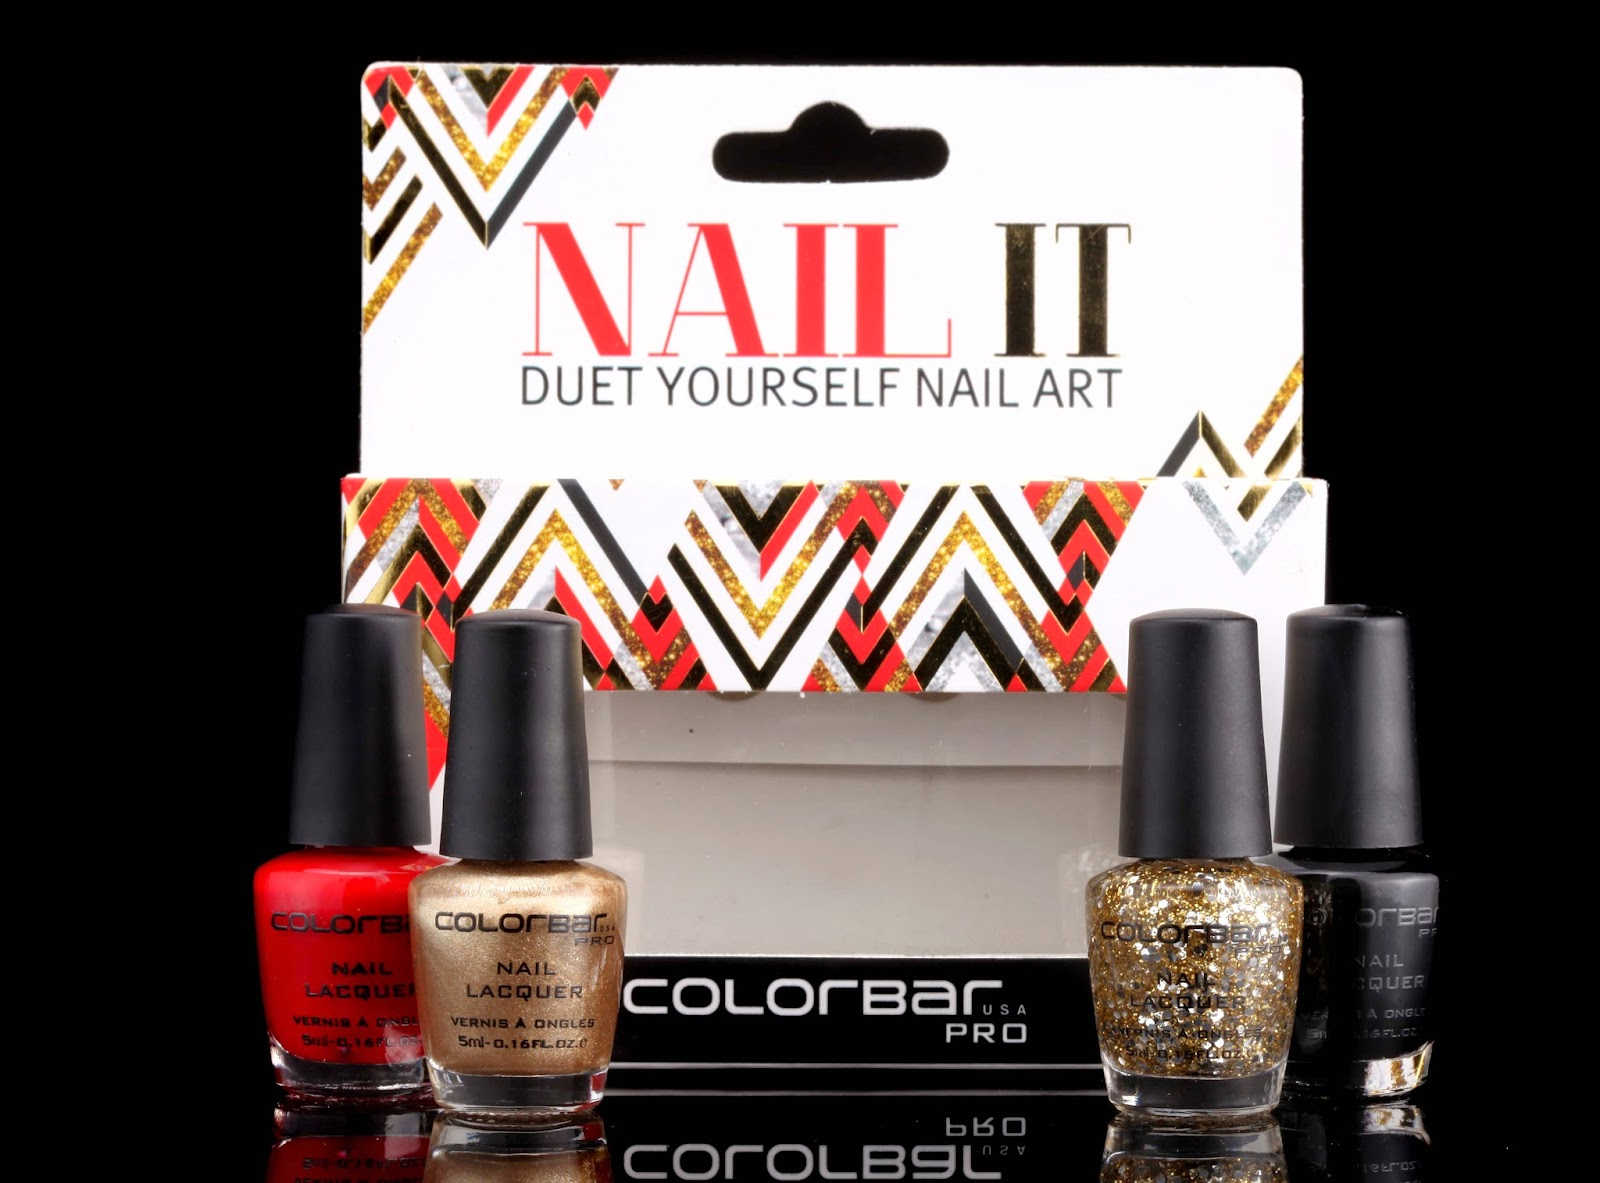 Fomo fashion on my own new colorbar launches nail it duet indulge in a one night stand with your colorful self as you gloss over your nails with colorbars unique new nail art kits solutioingenieria Choice Image